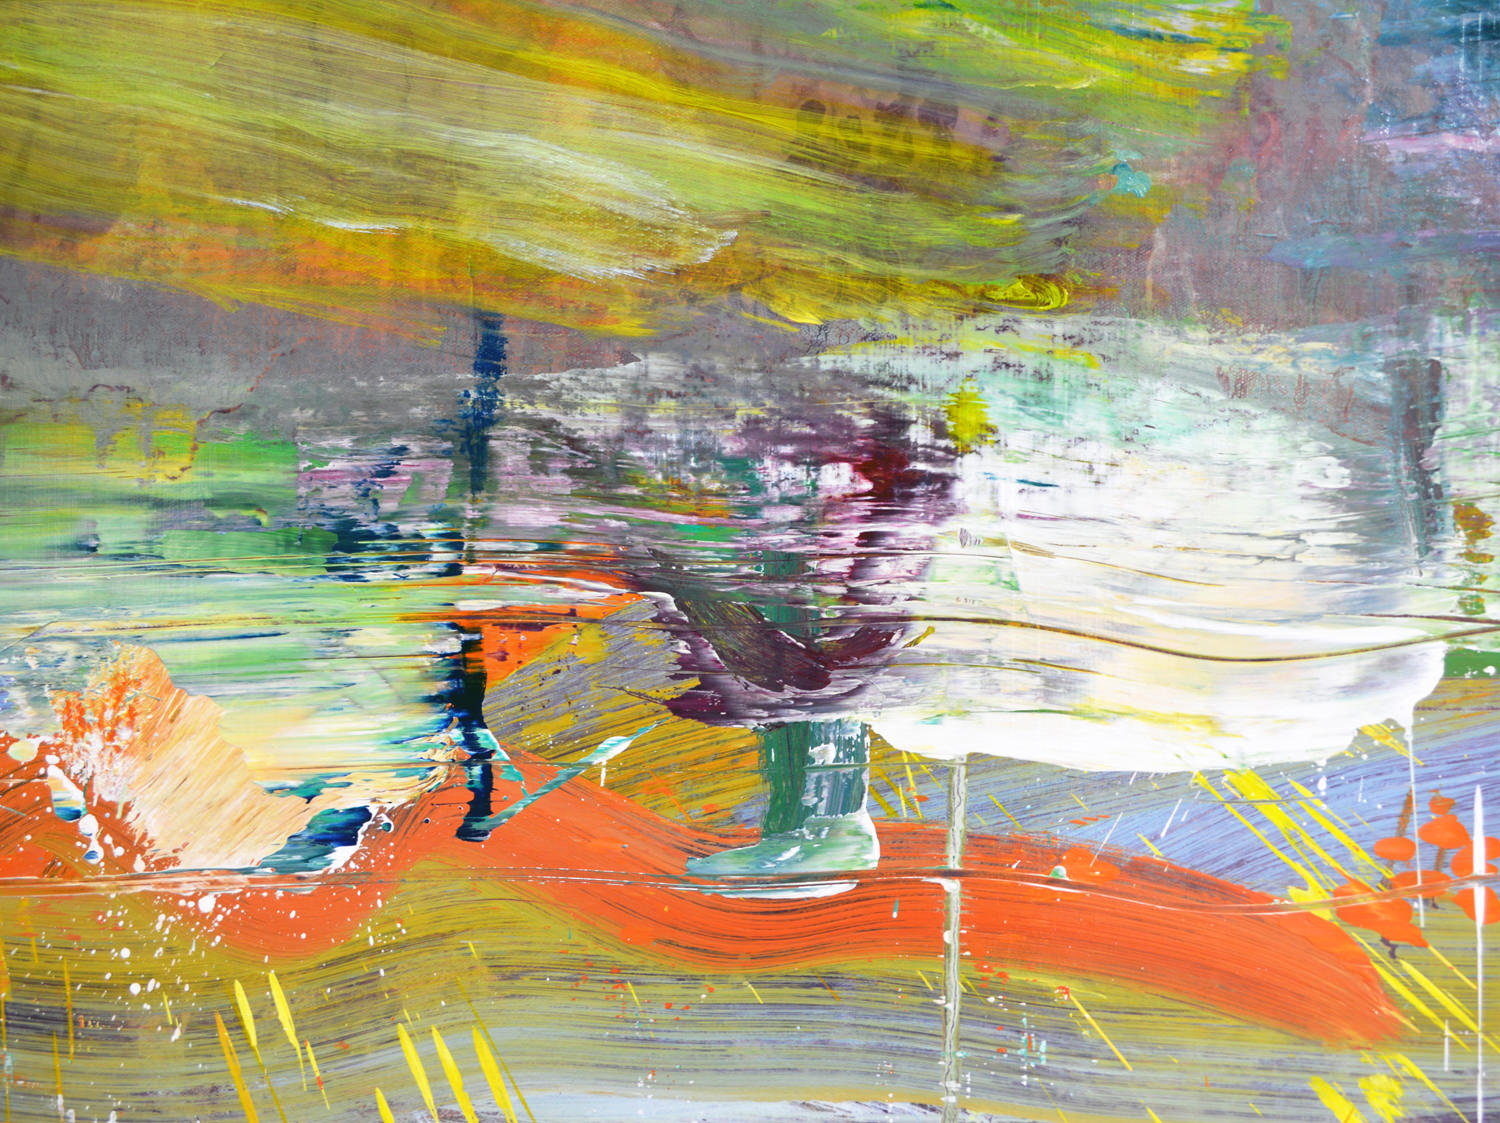 Robert West. Borderline Series. Abstract Painting. No.77. Oil on Polyester. 130 x 195 cm. 2017-2018_07.jpg